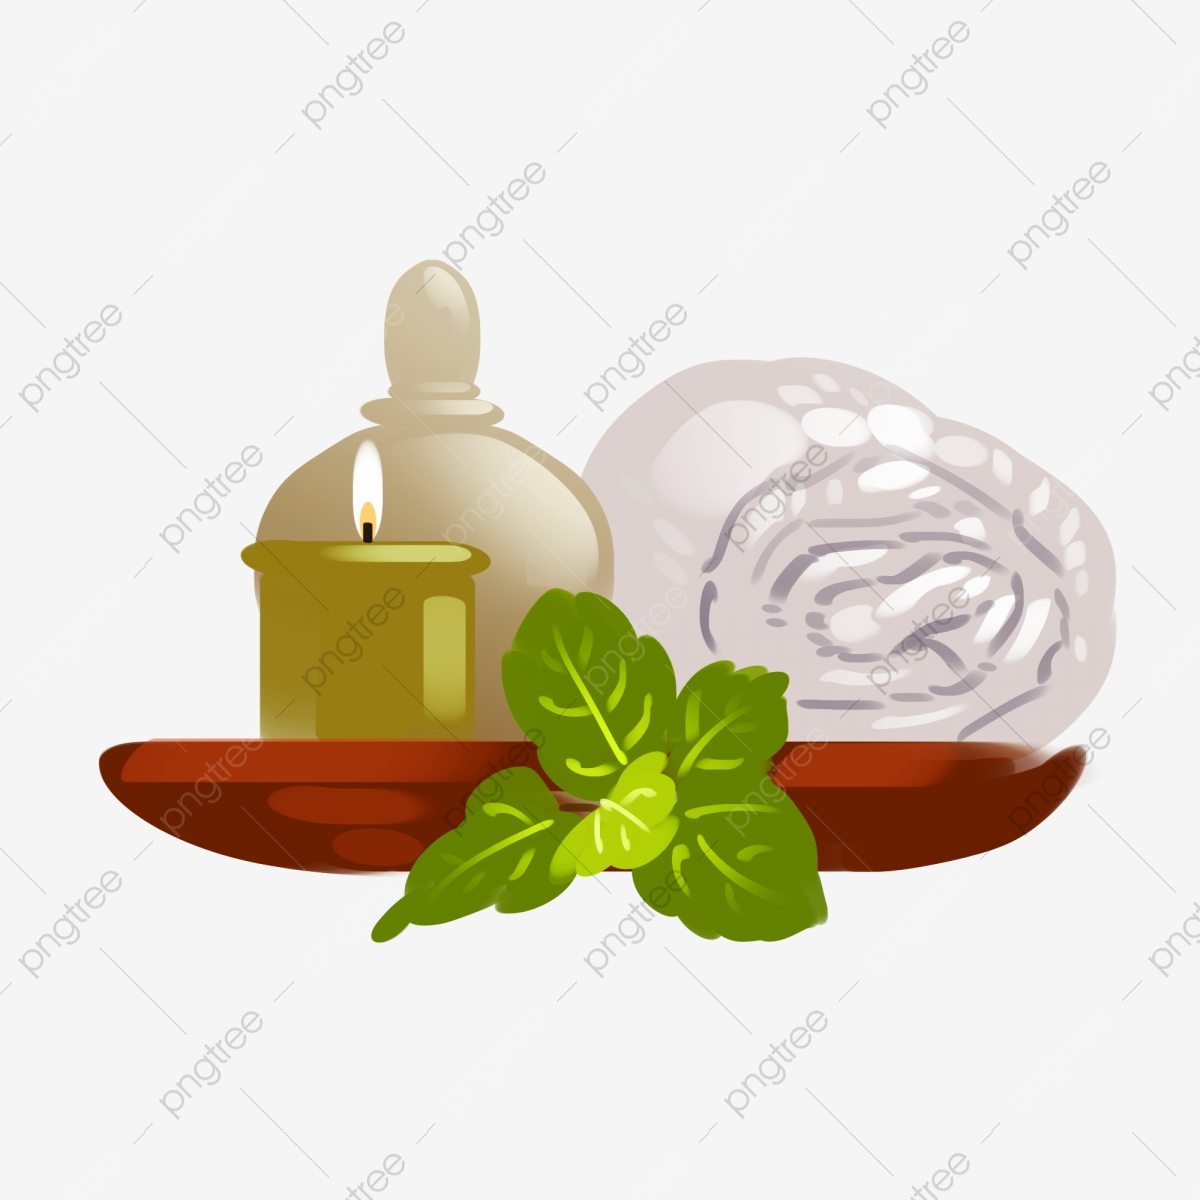 Oil clipart health. Supplies towel spa png